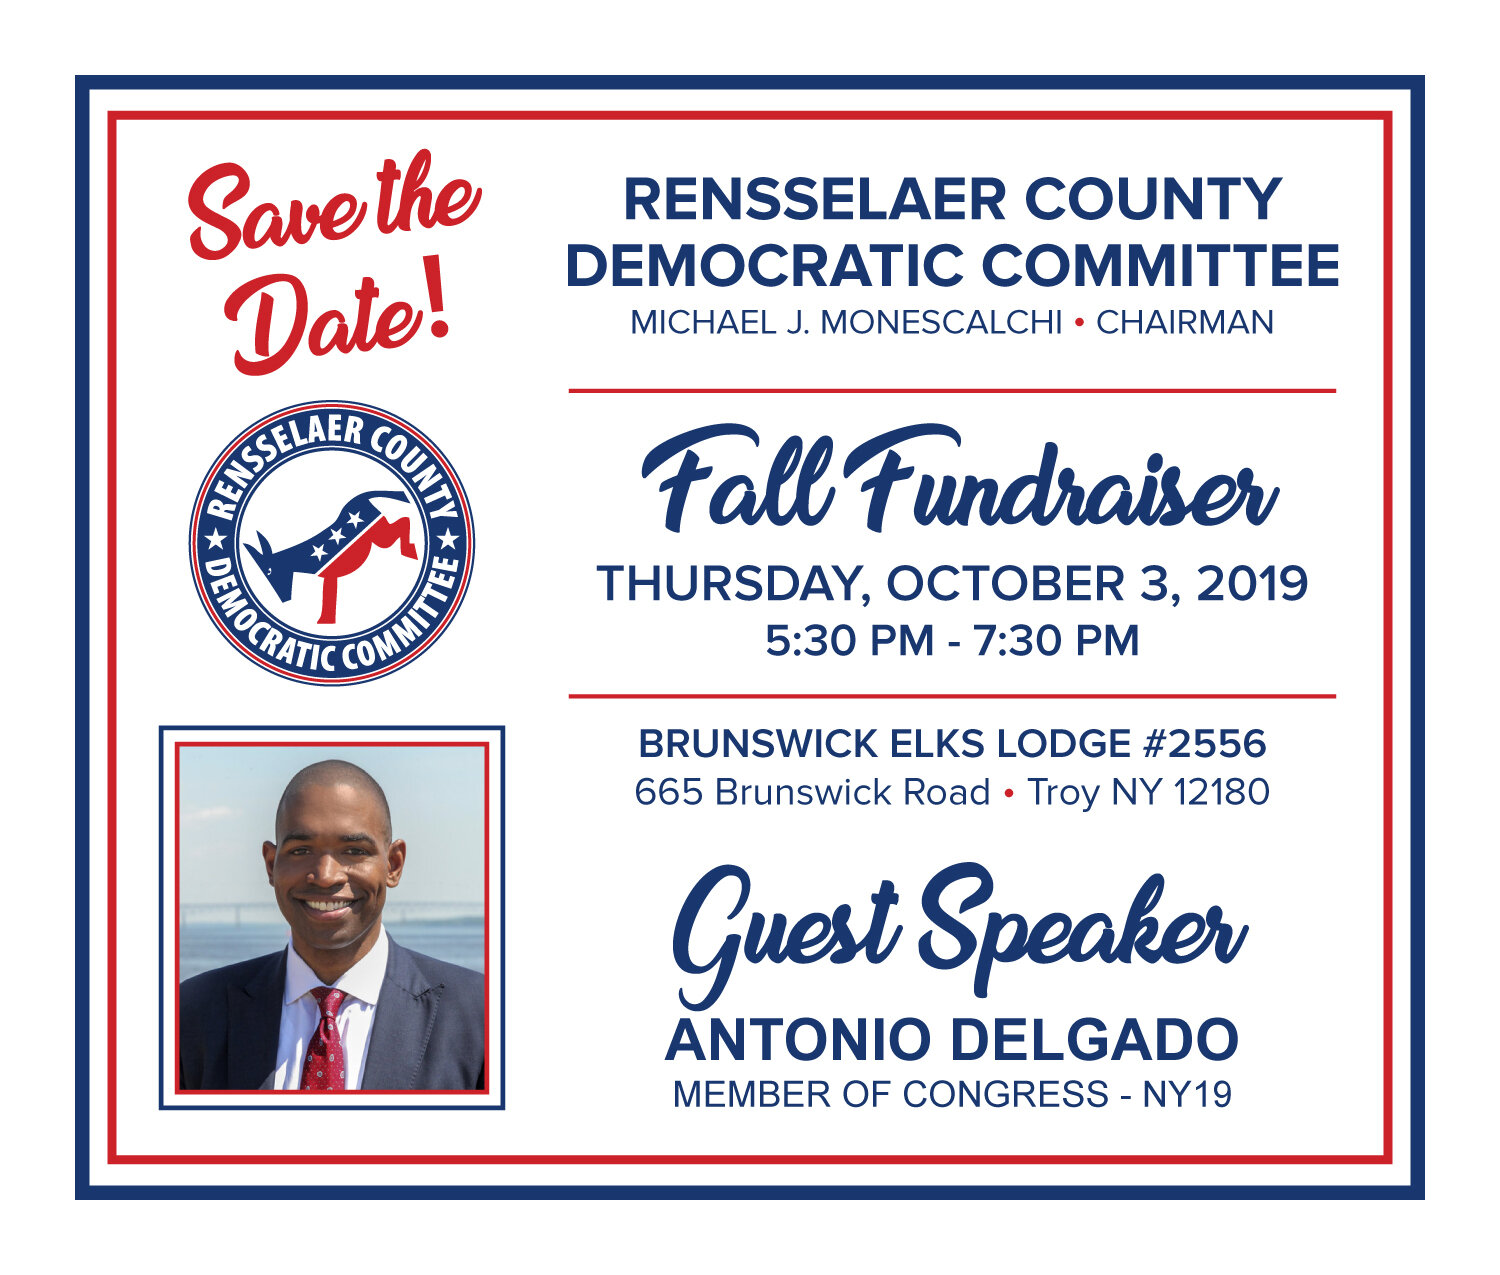 RCDC 2019 Fall Fundraiser Save the Date.jpg